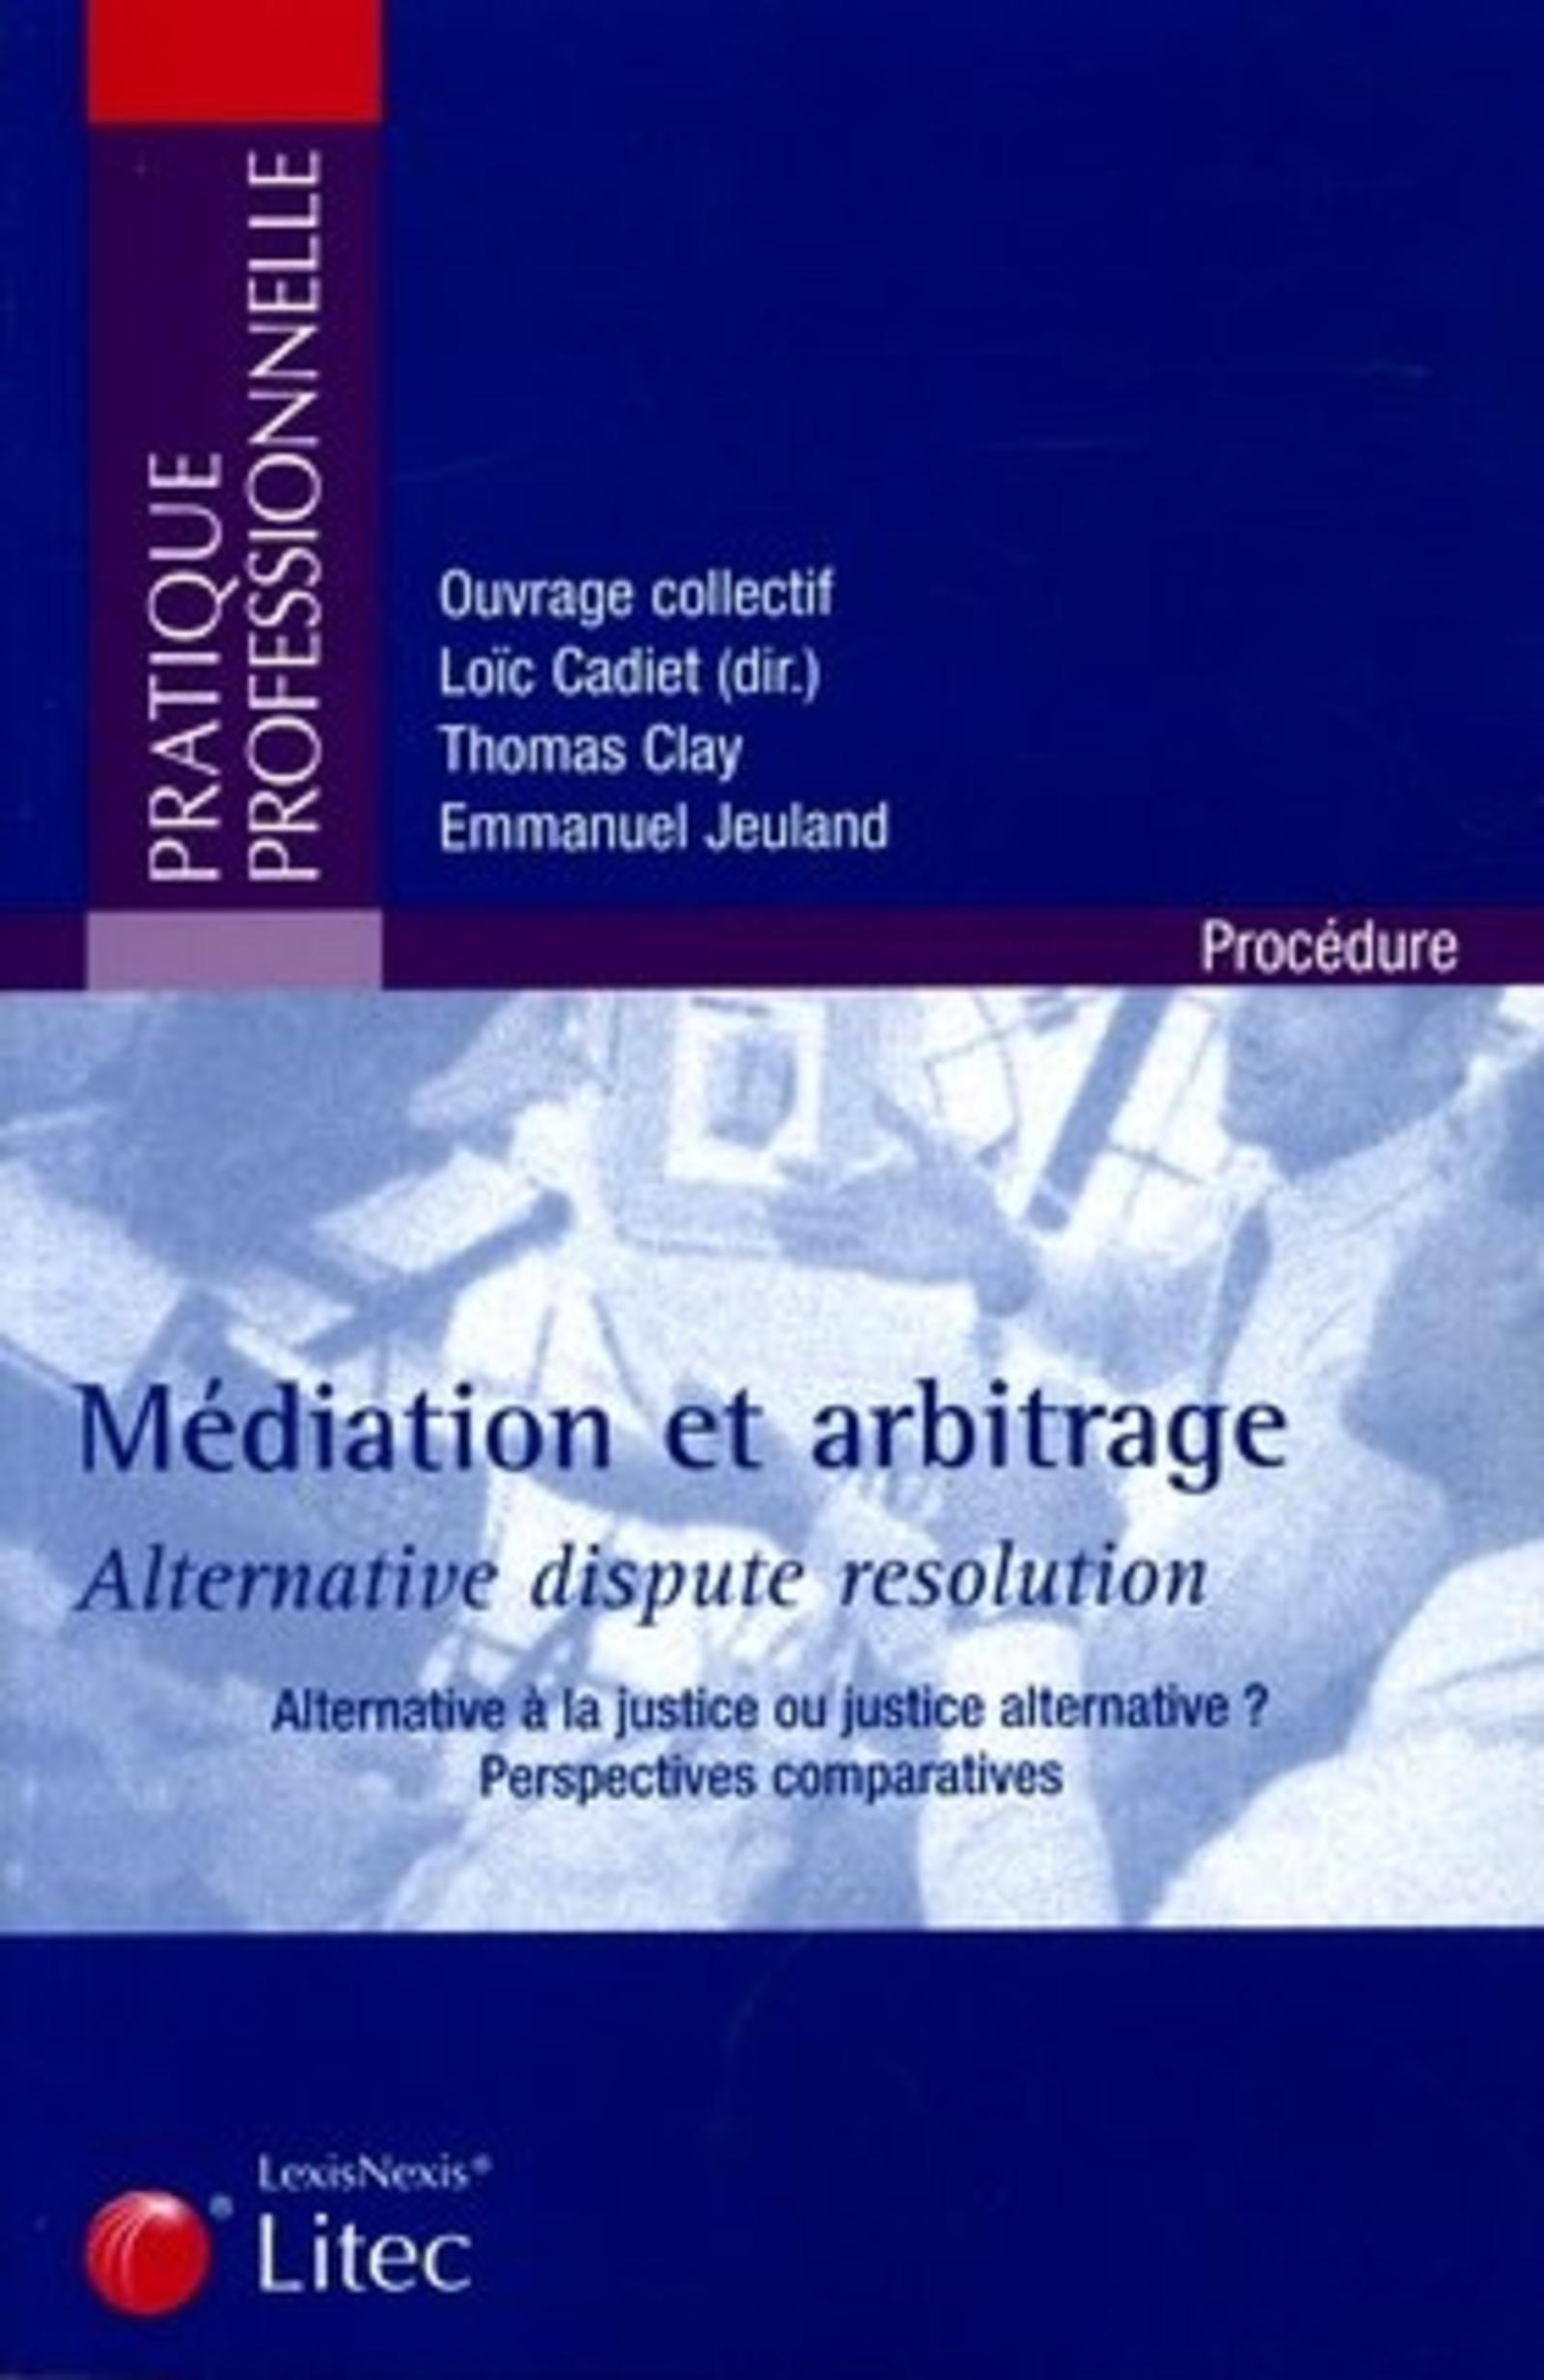 MEDIATION ET ARBITRAGE - ALTERNATIVE DISPUTE RESOLUTION - ALTERNATIVE A LA JUSTICE OU JUSTICE ALTERN